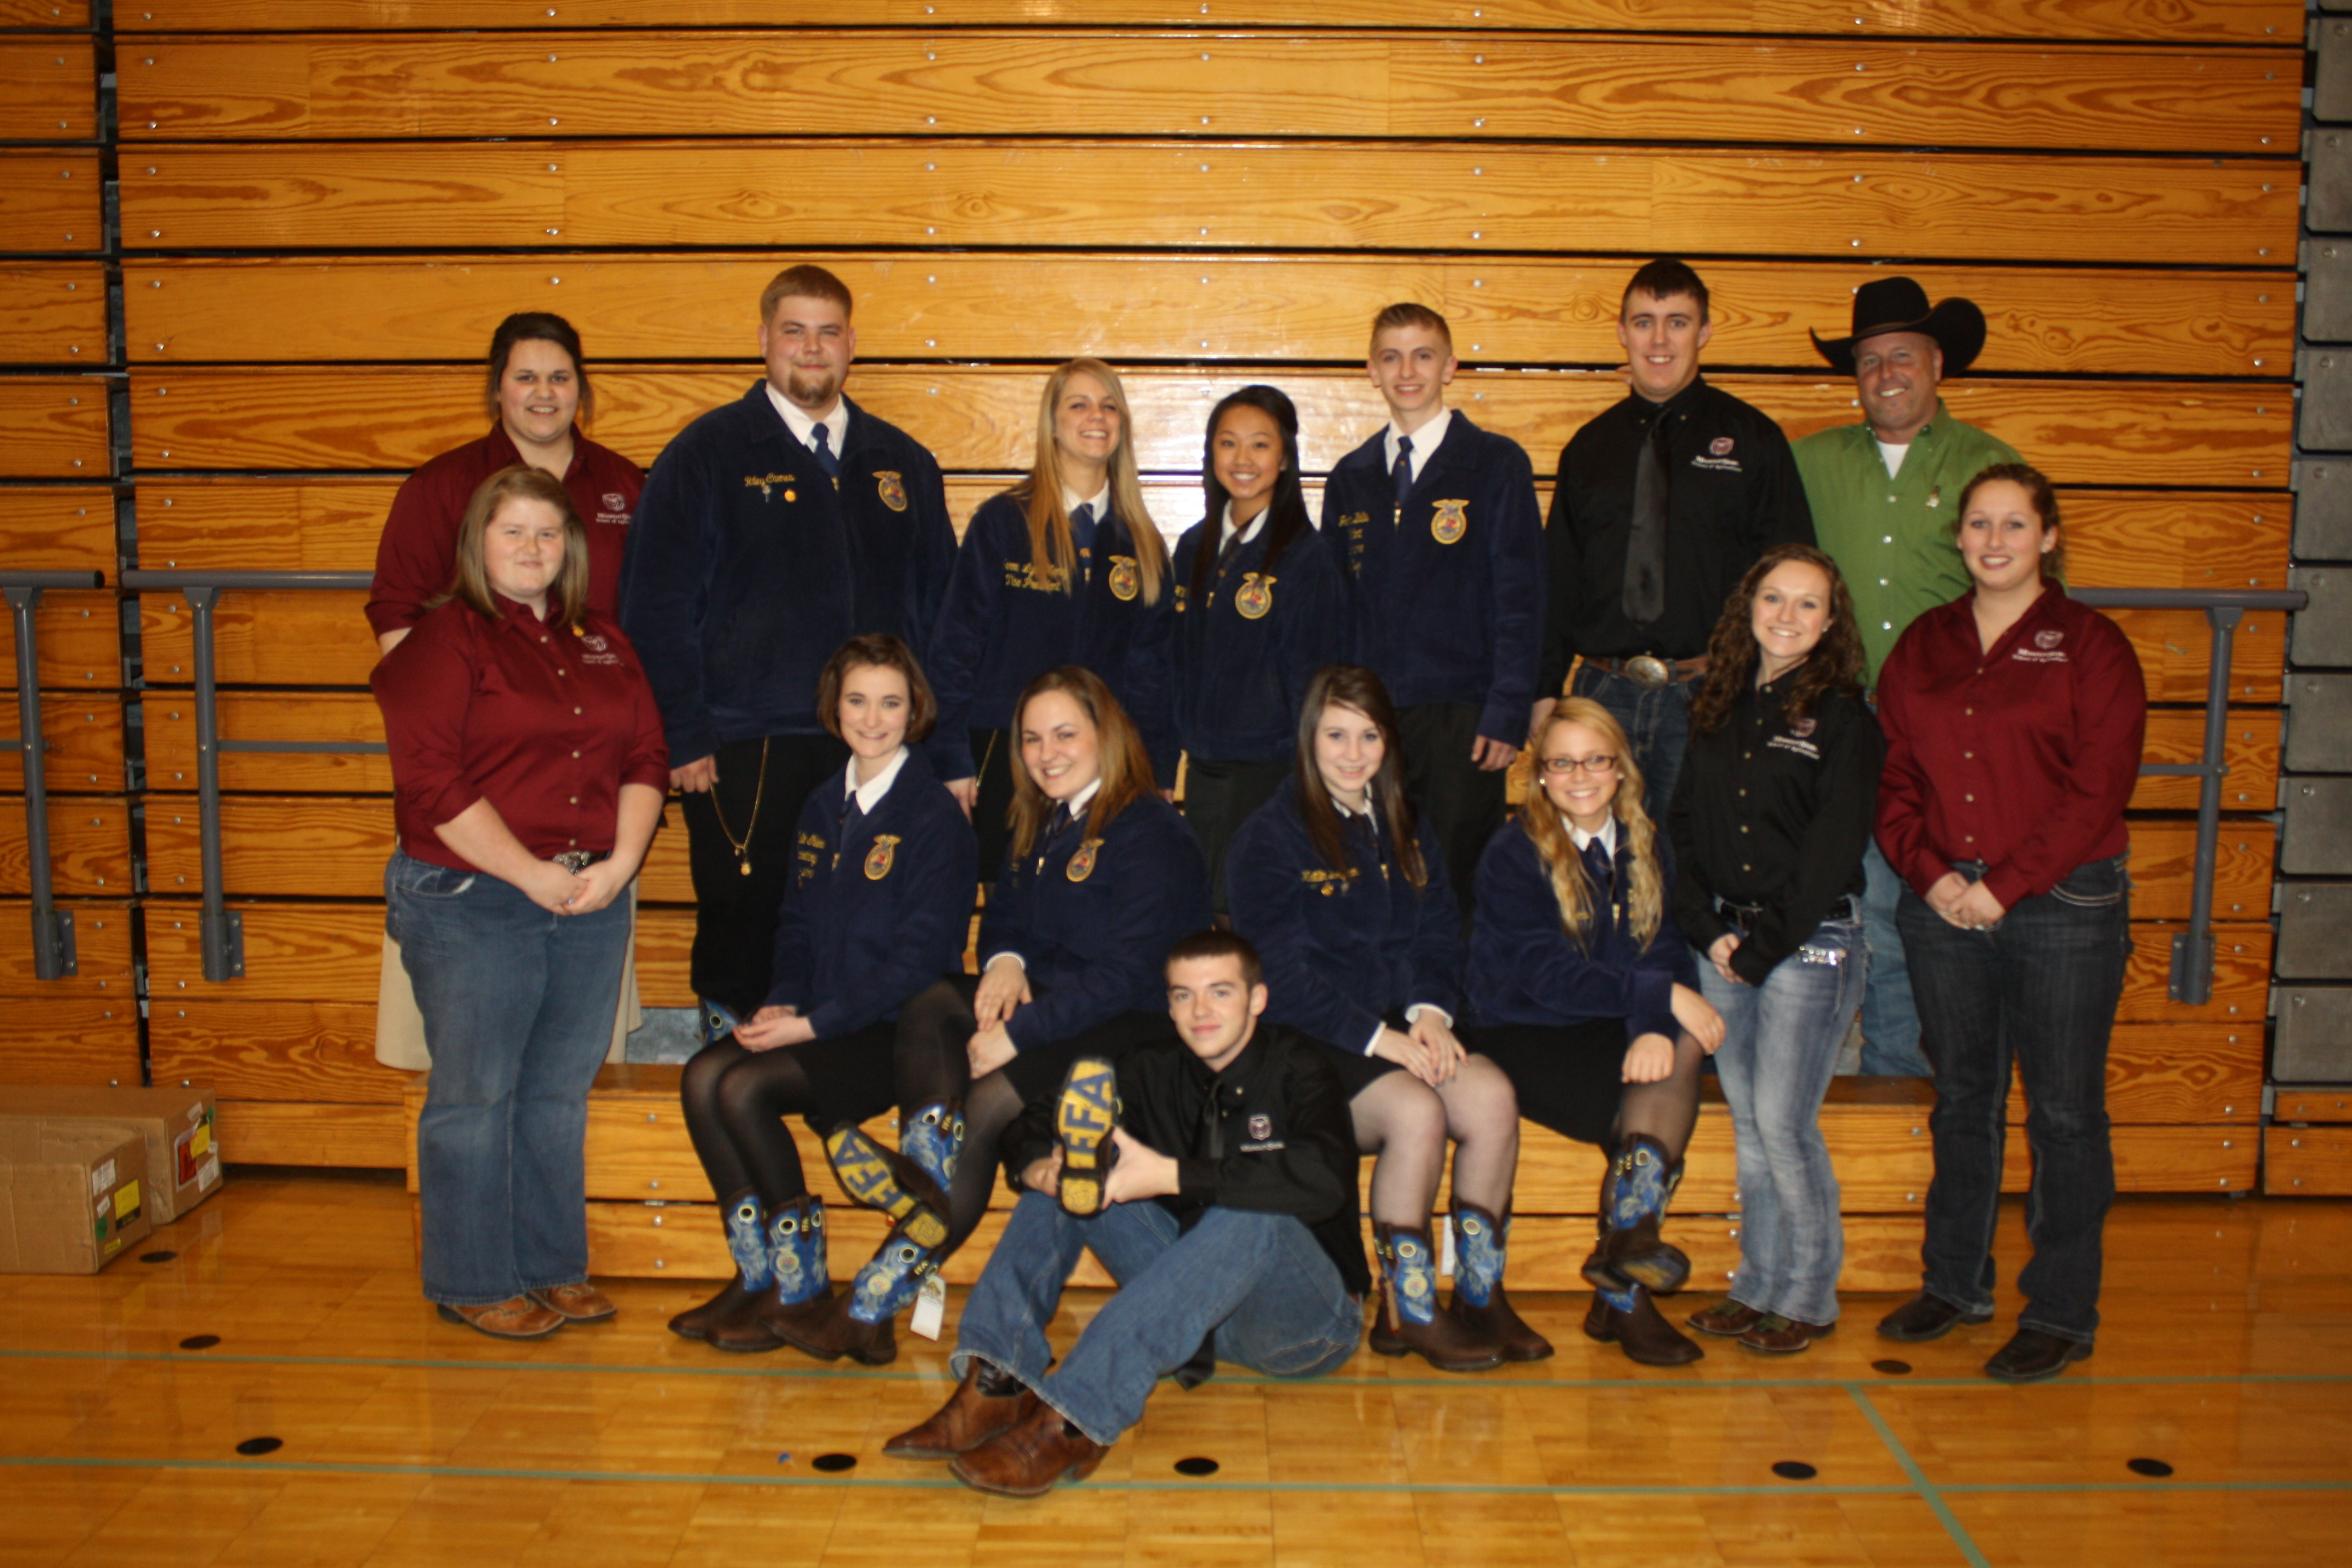 FFA Area 11 Officers pose with with student leaders from the William H. Darr School of Agriculture.